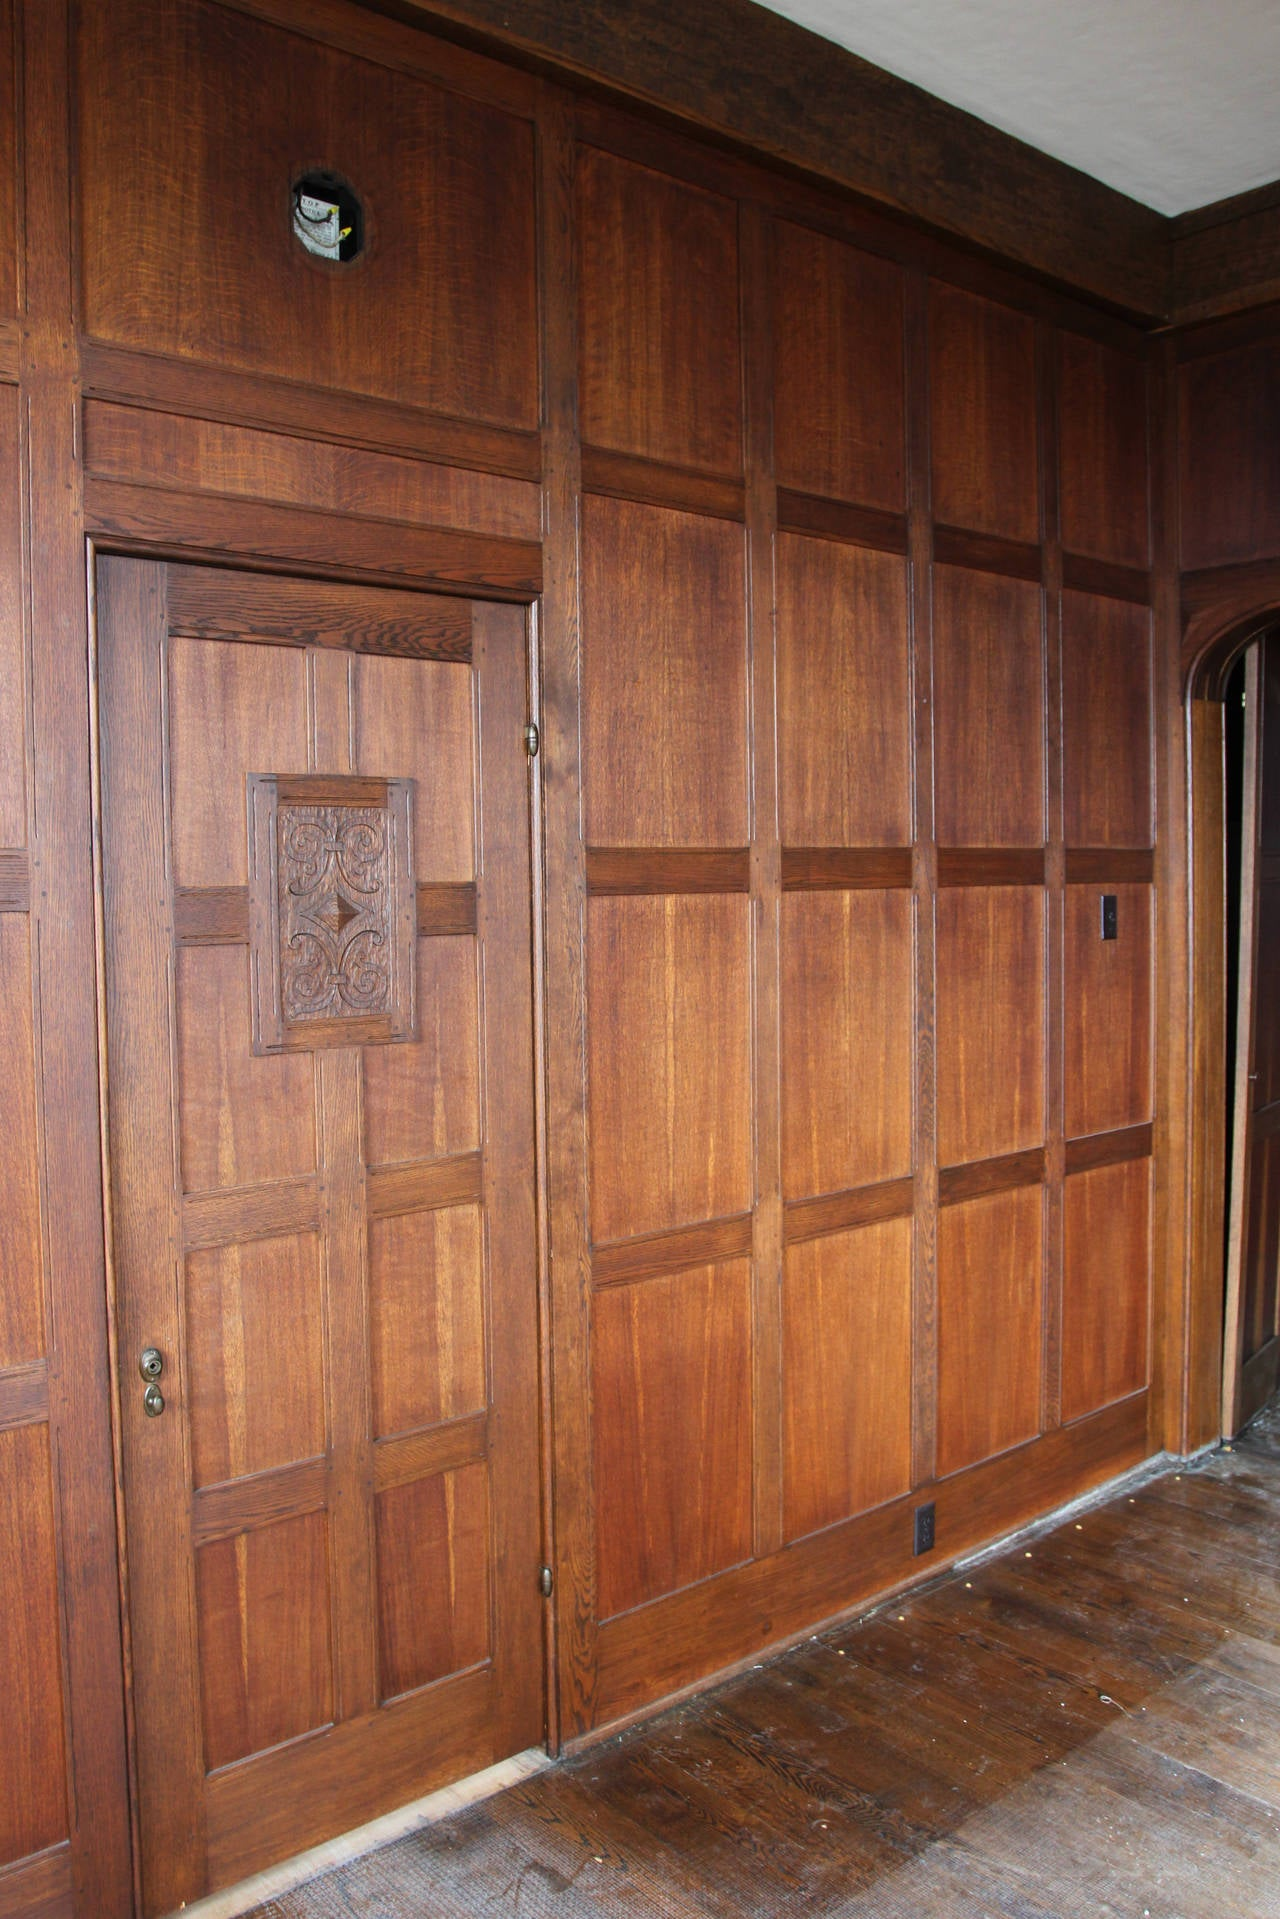 Beautiful Wood Paneled Rooms: 1905 Solid English Oak Paneled Room With Matching Door